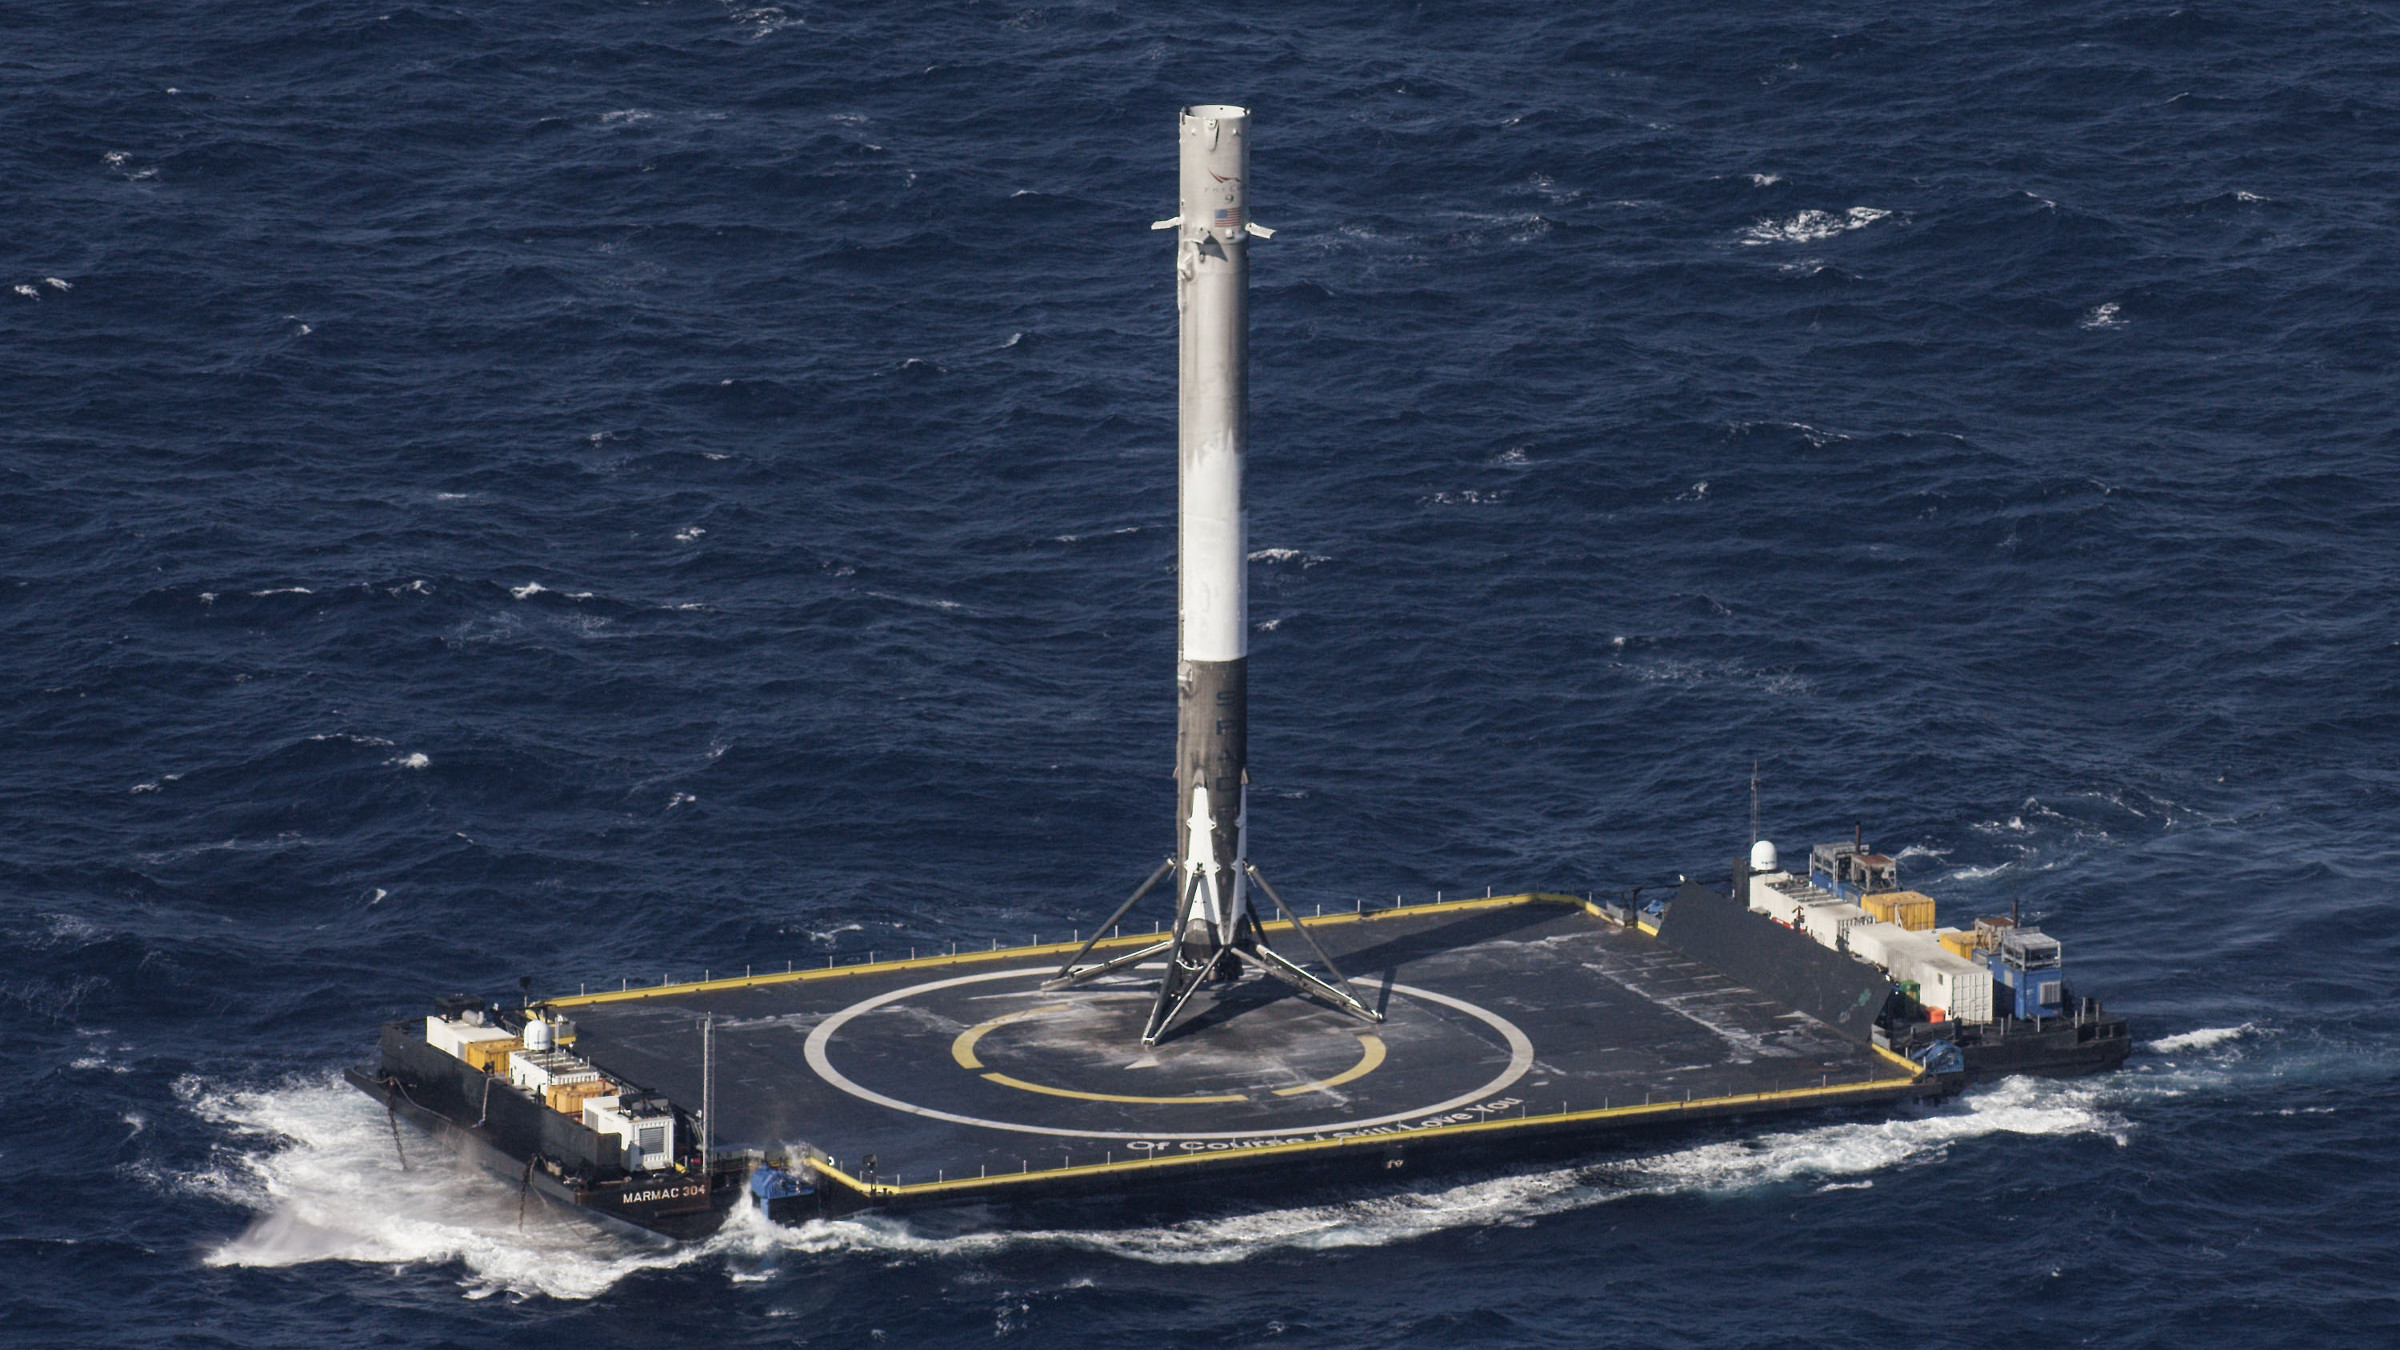 The first stage booster of the SpaceX Falcon rocket after landing in April 2016.